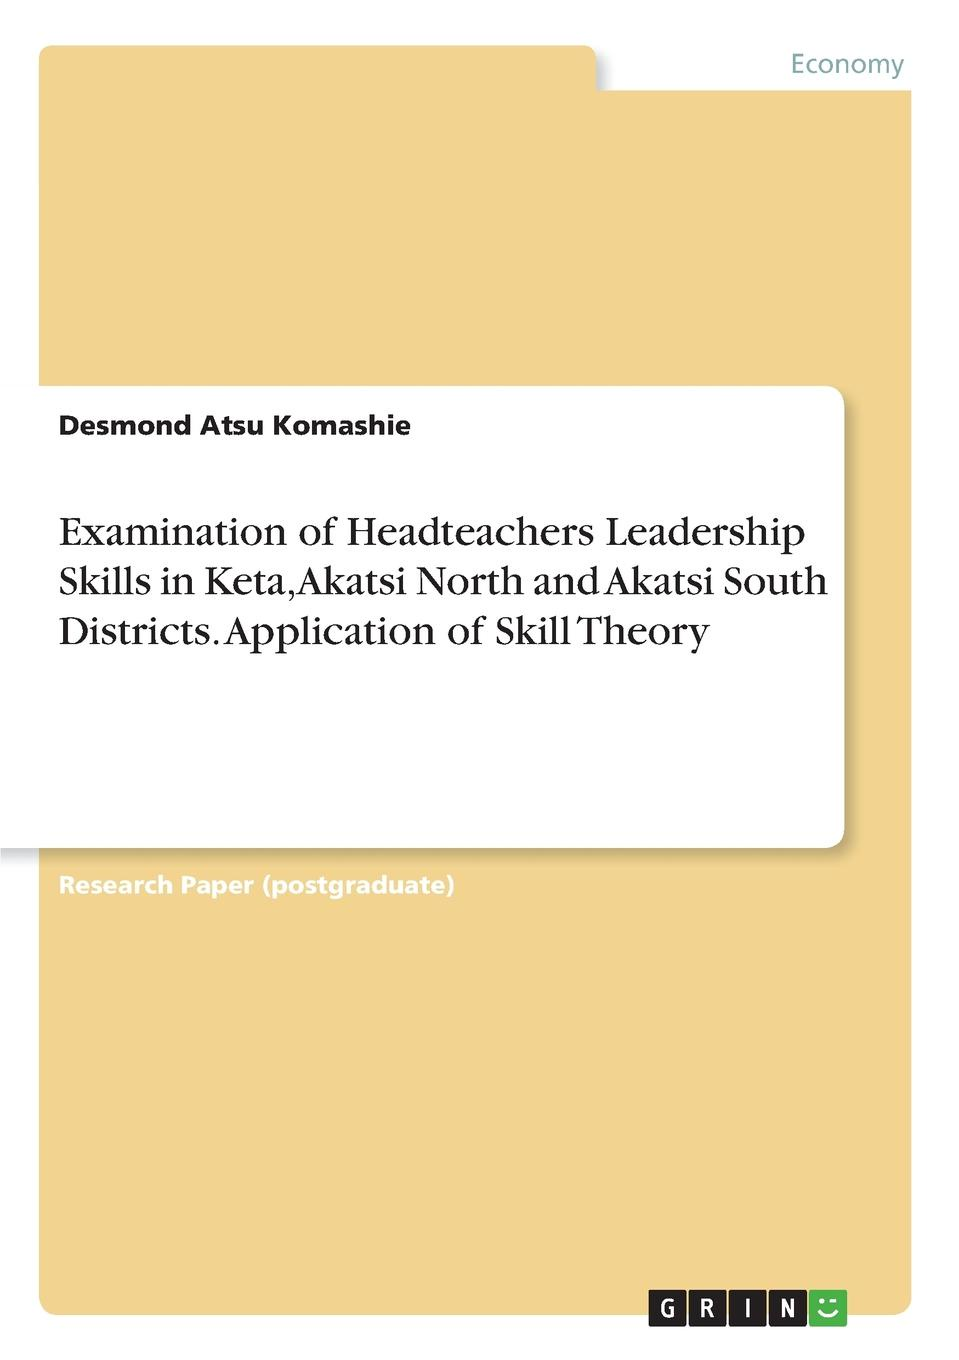 Desmond Atsu Komashie Examination of Headteachers Leadership Skills in Keta, Akatsi North and Akatsi South Districts. Application of Skill Theory john hamm unusually excellent the necessary nine skills required for the practice of great leadership